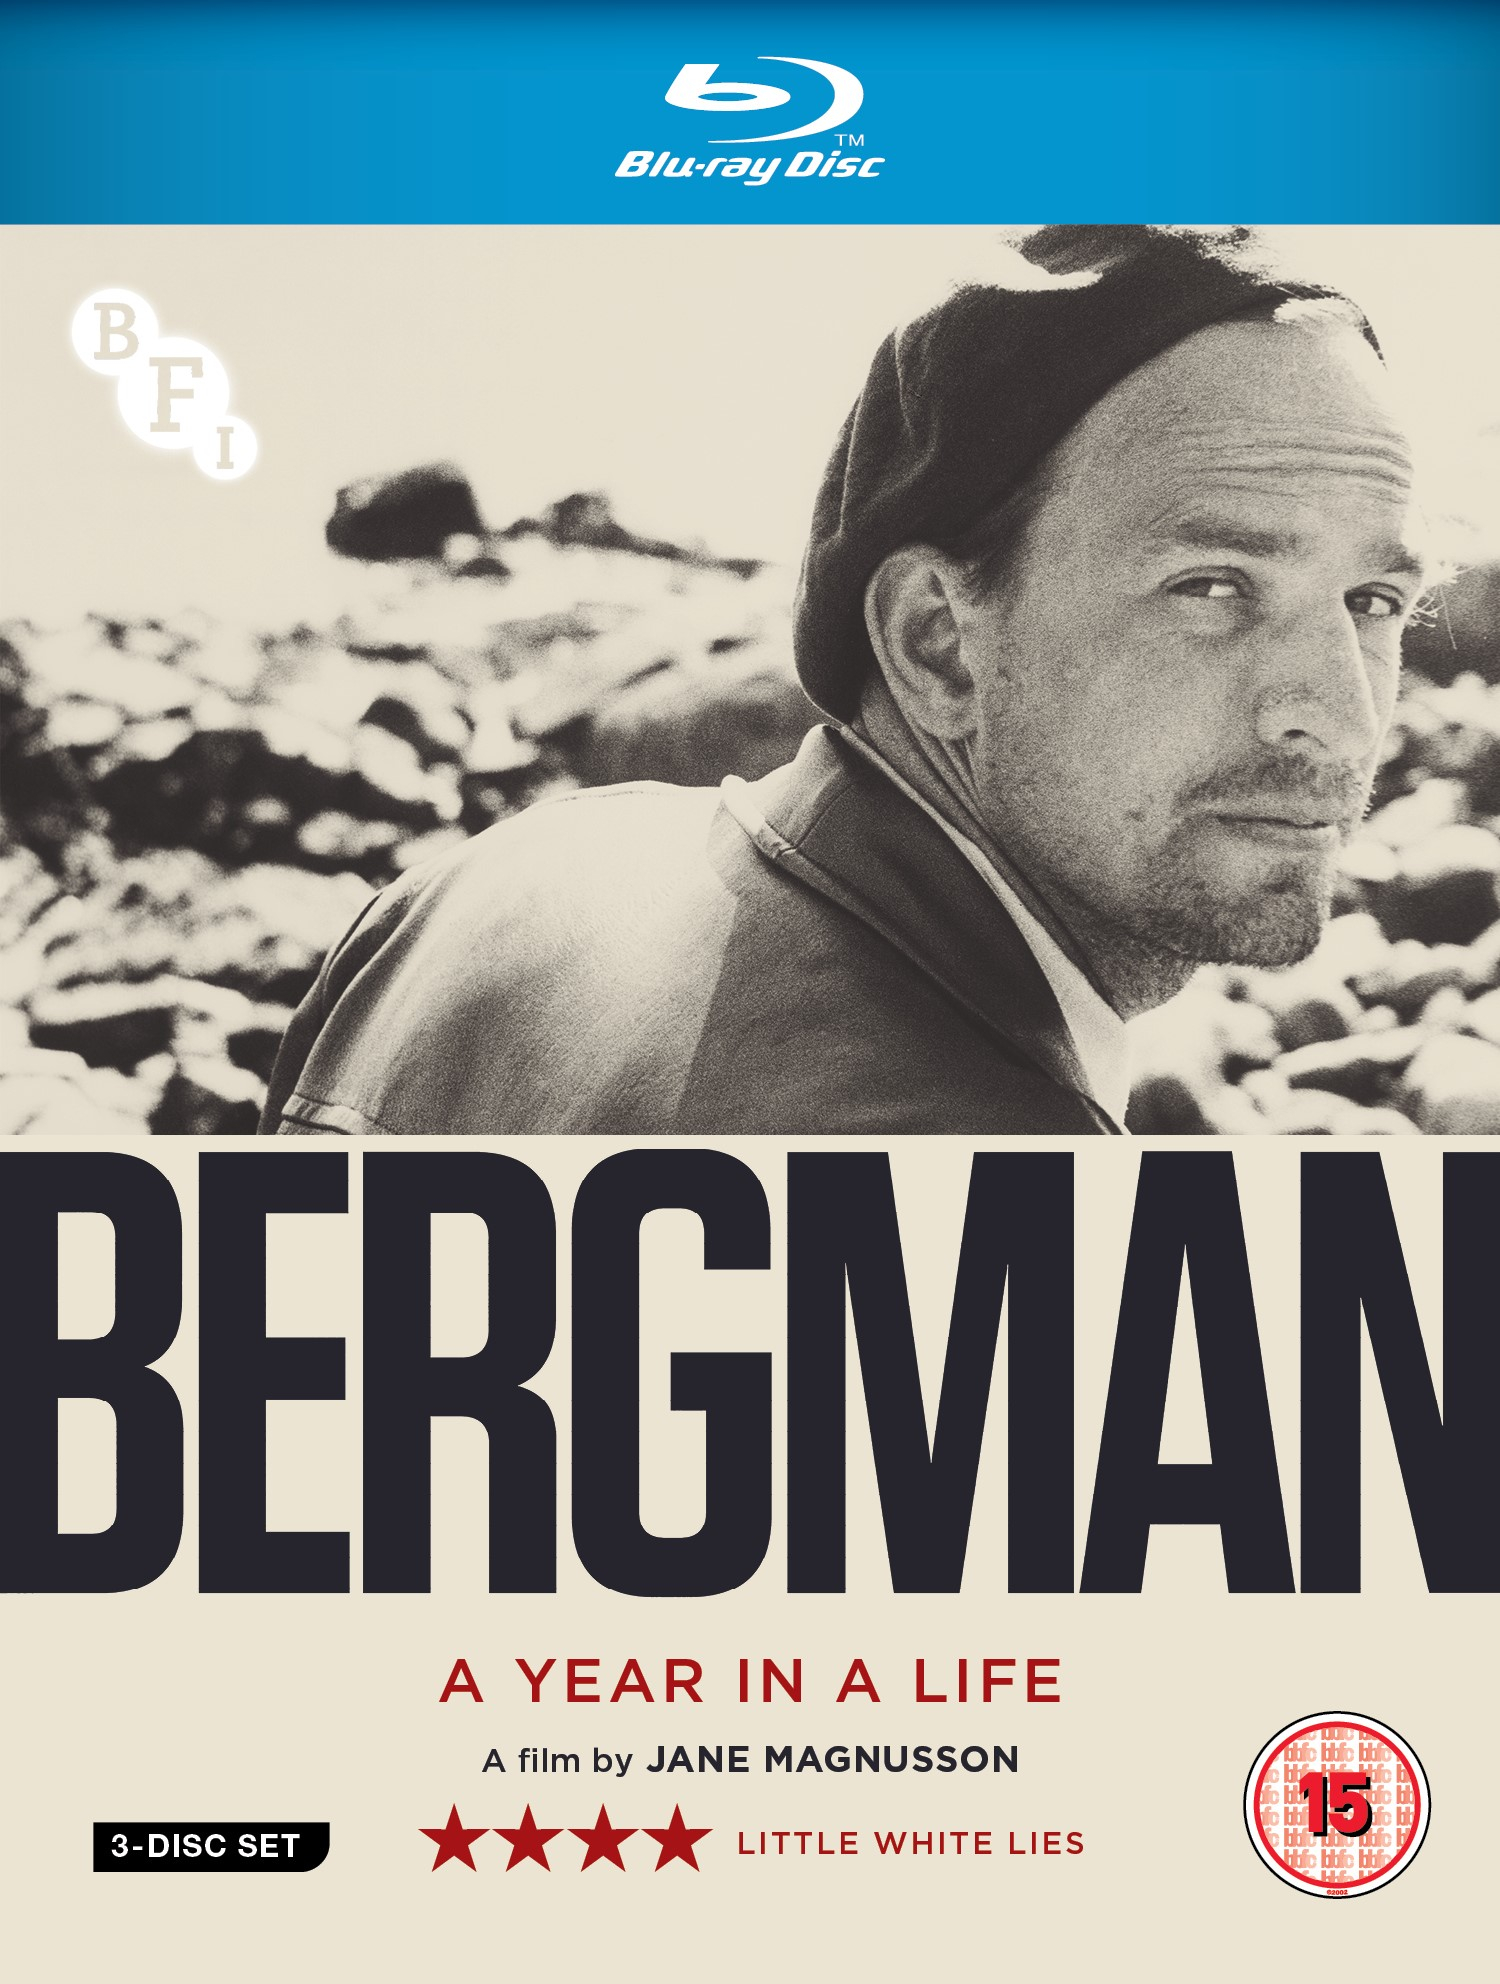 Buy PRE-ORDER Bergman: A Year In A Life (Limited Edition Blu-ray)